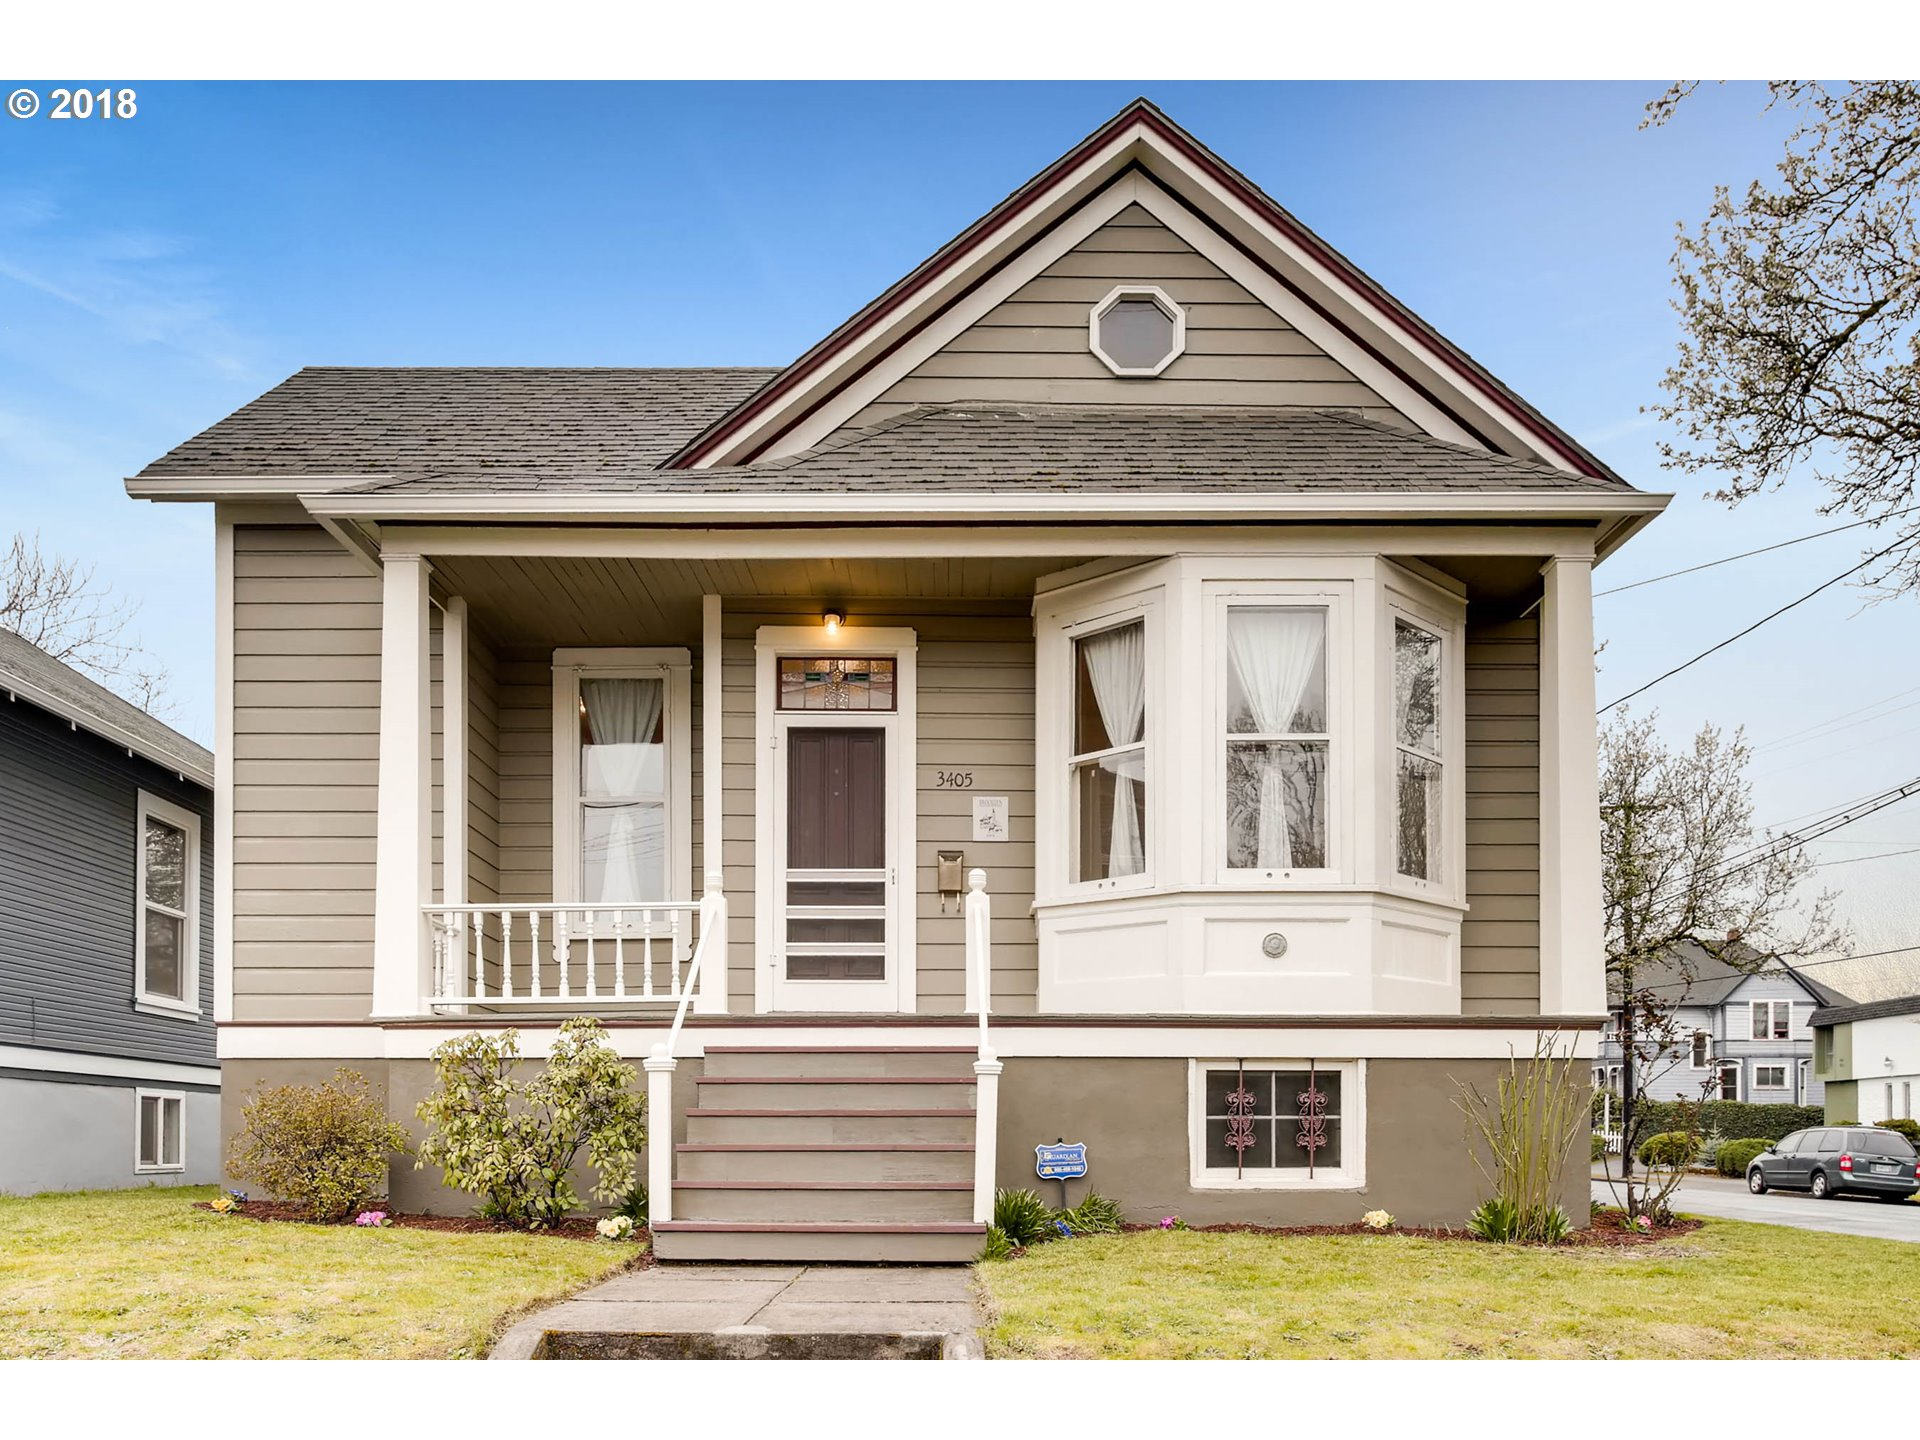 & 3405 SE 13TH AVE PORTLAND OR 97202 | MLS# 18693146 u2013 PDX Listed